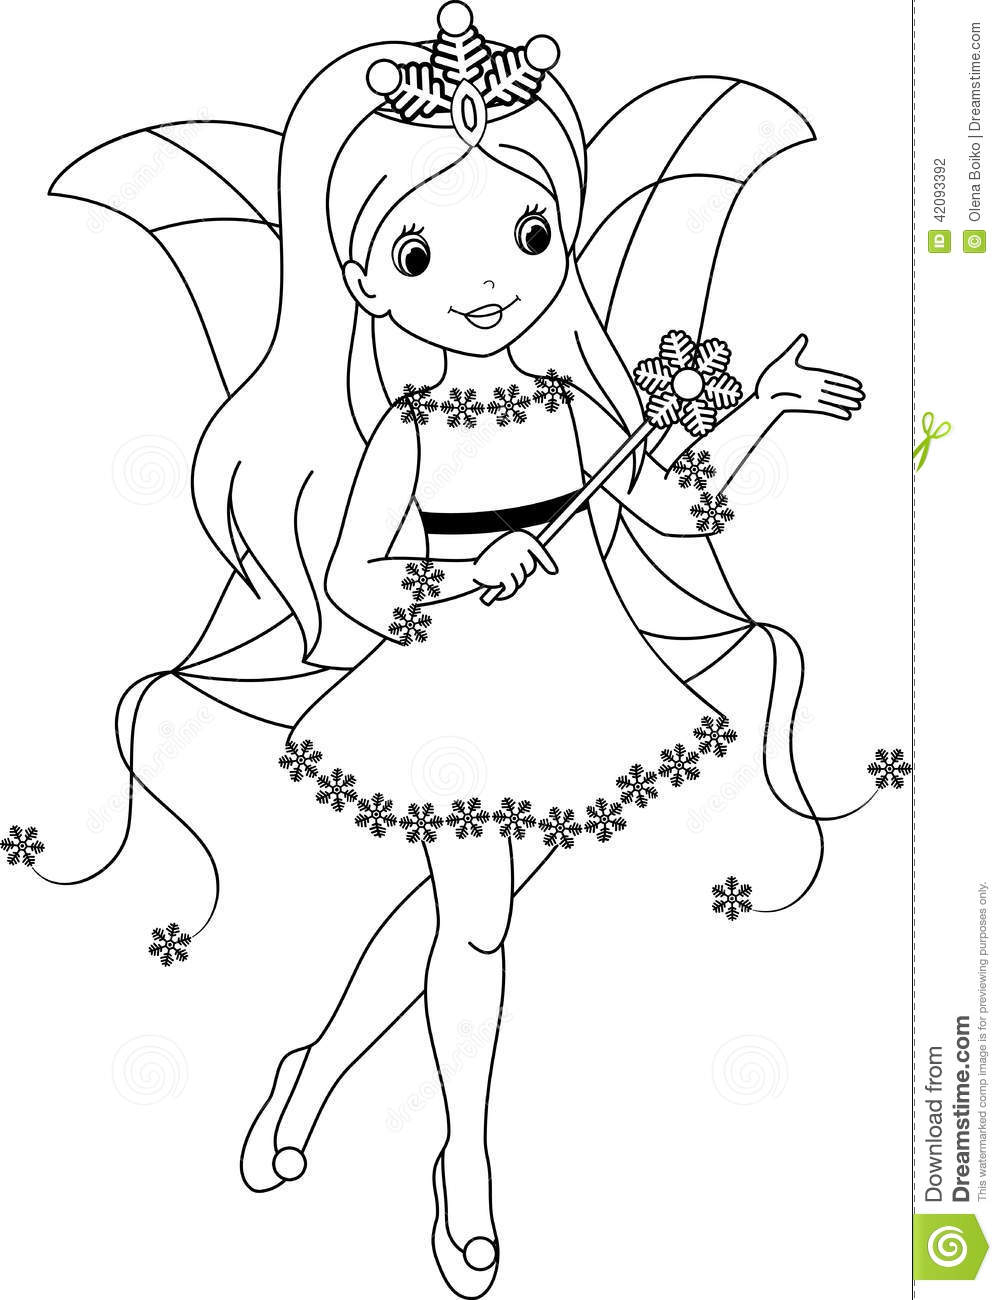 1002x1300 Tooth Fairy Coloring Pages Awesome Tooth Fairy Coloring Pages